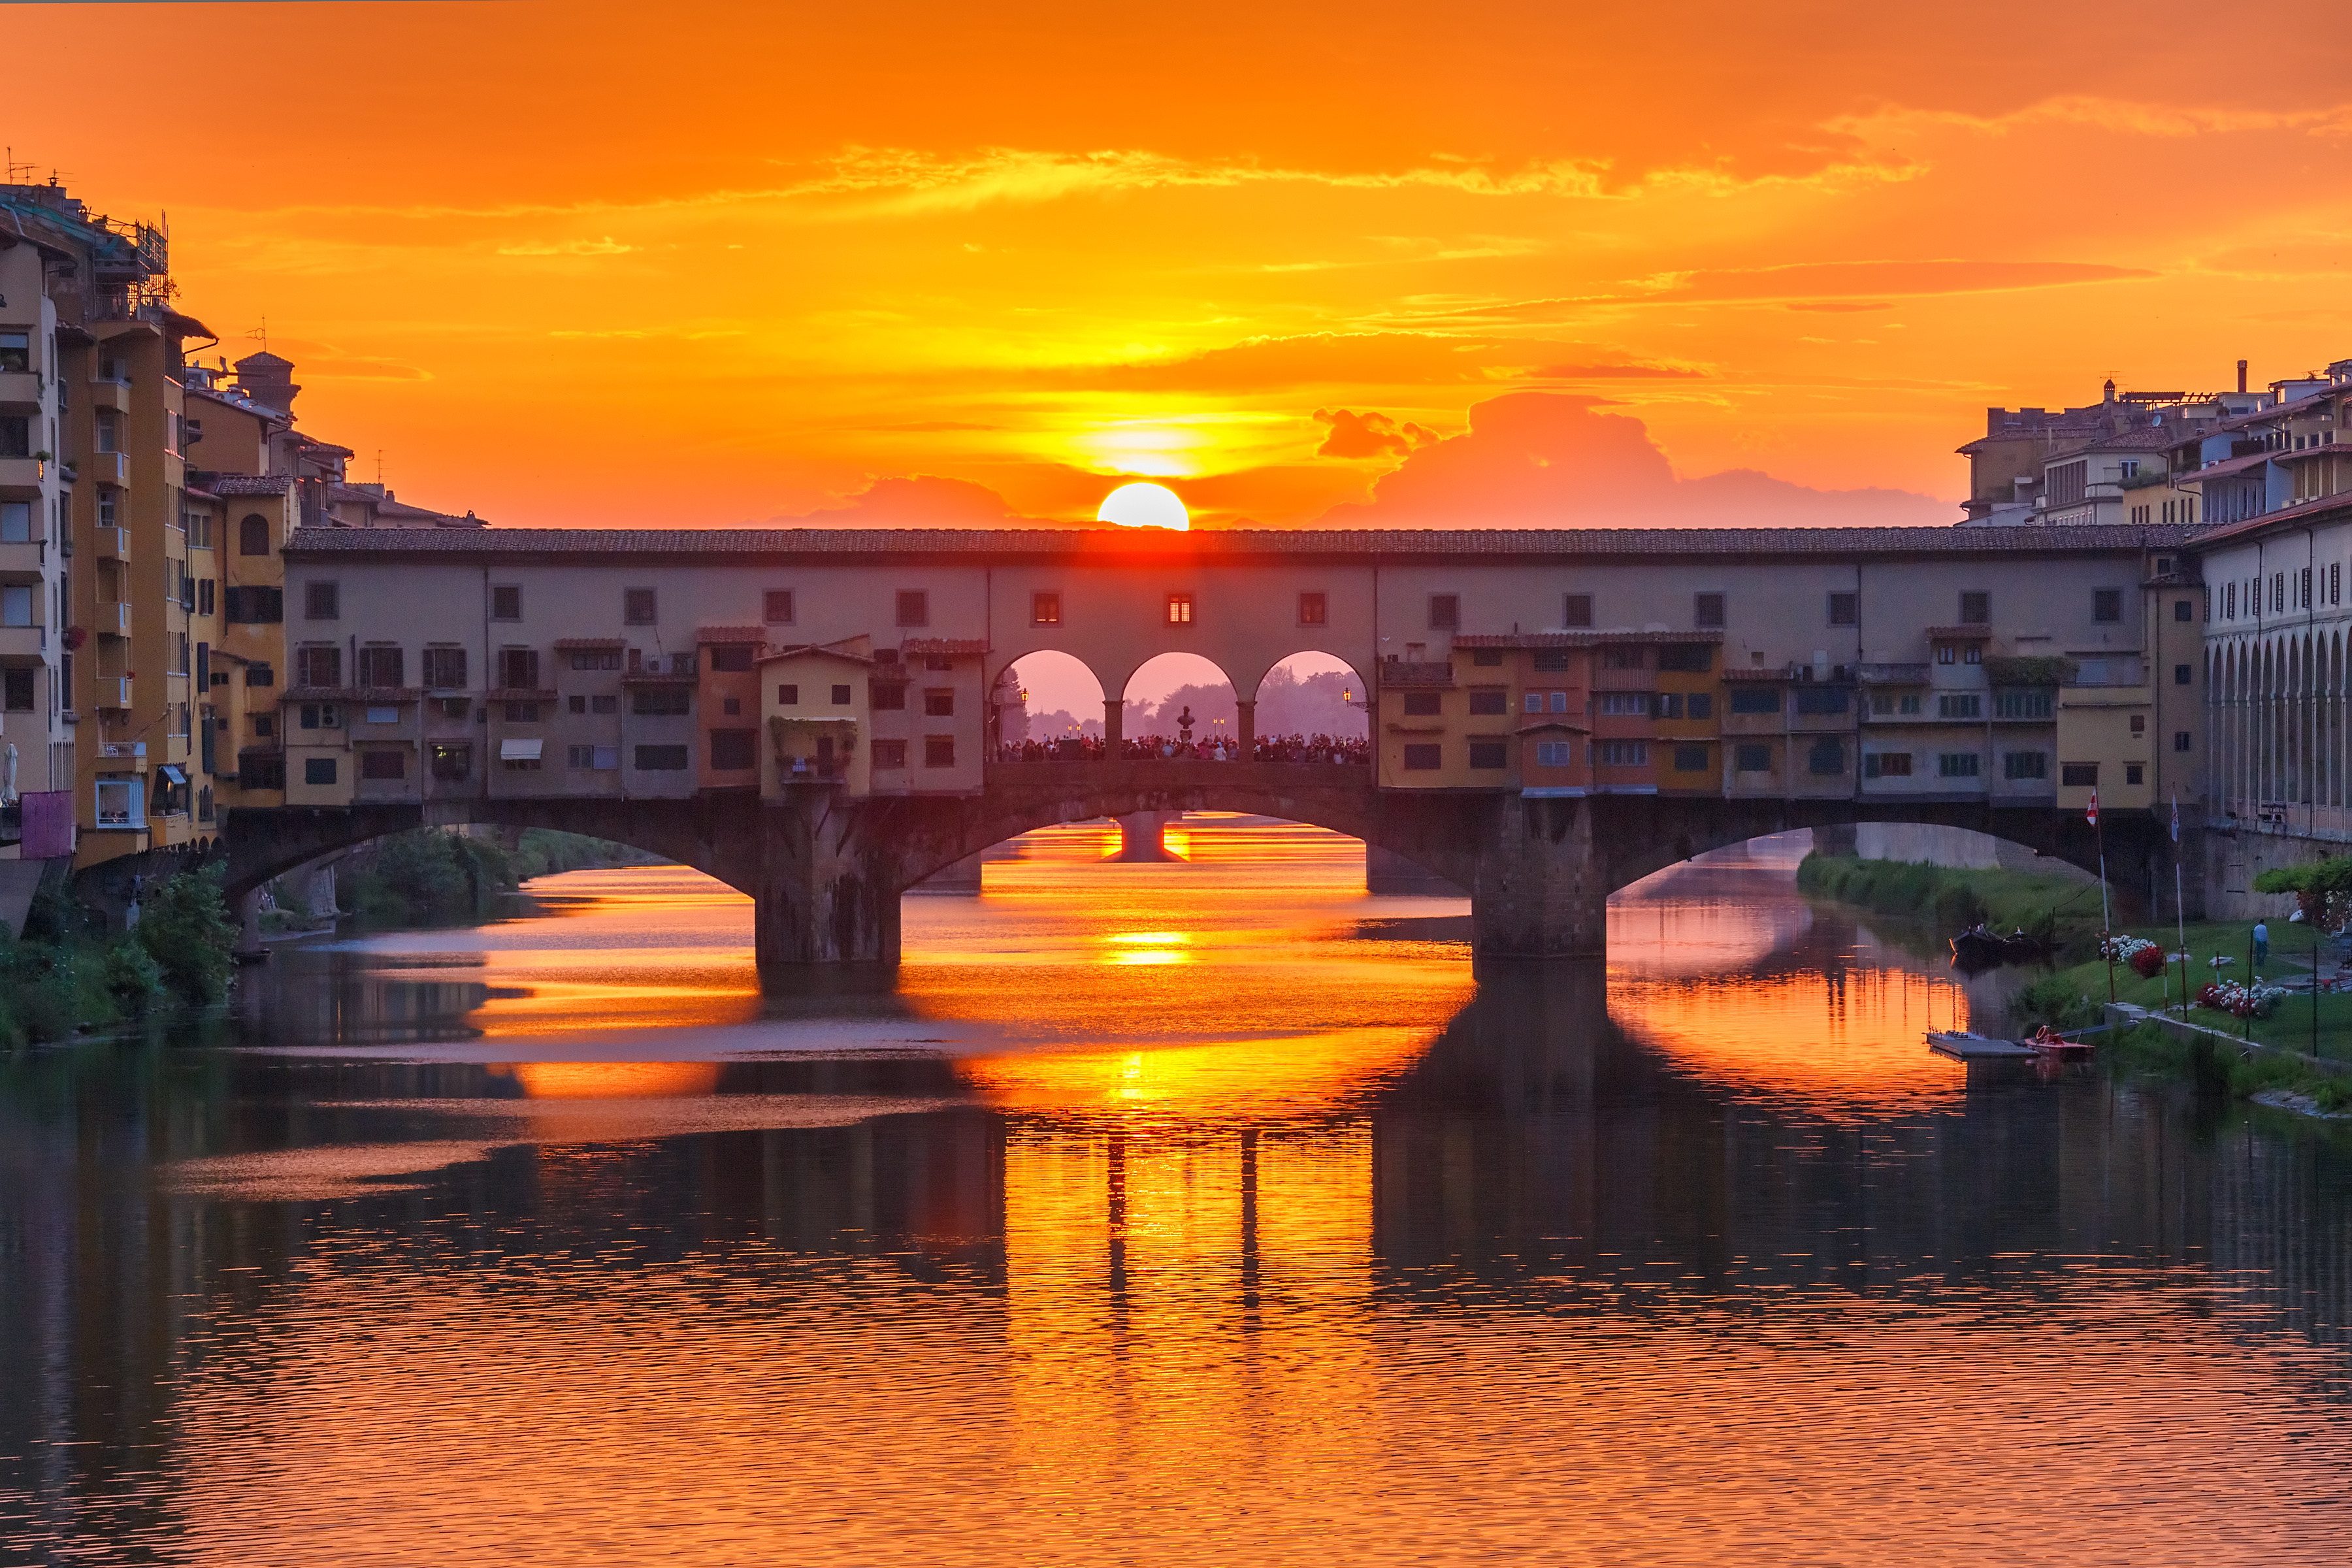 ponte-vecchio-bridge-at-night